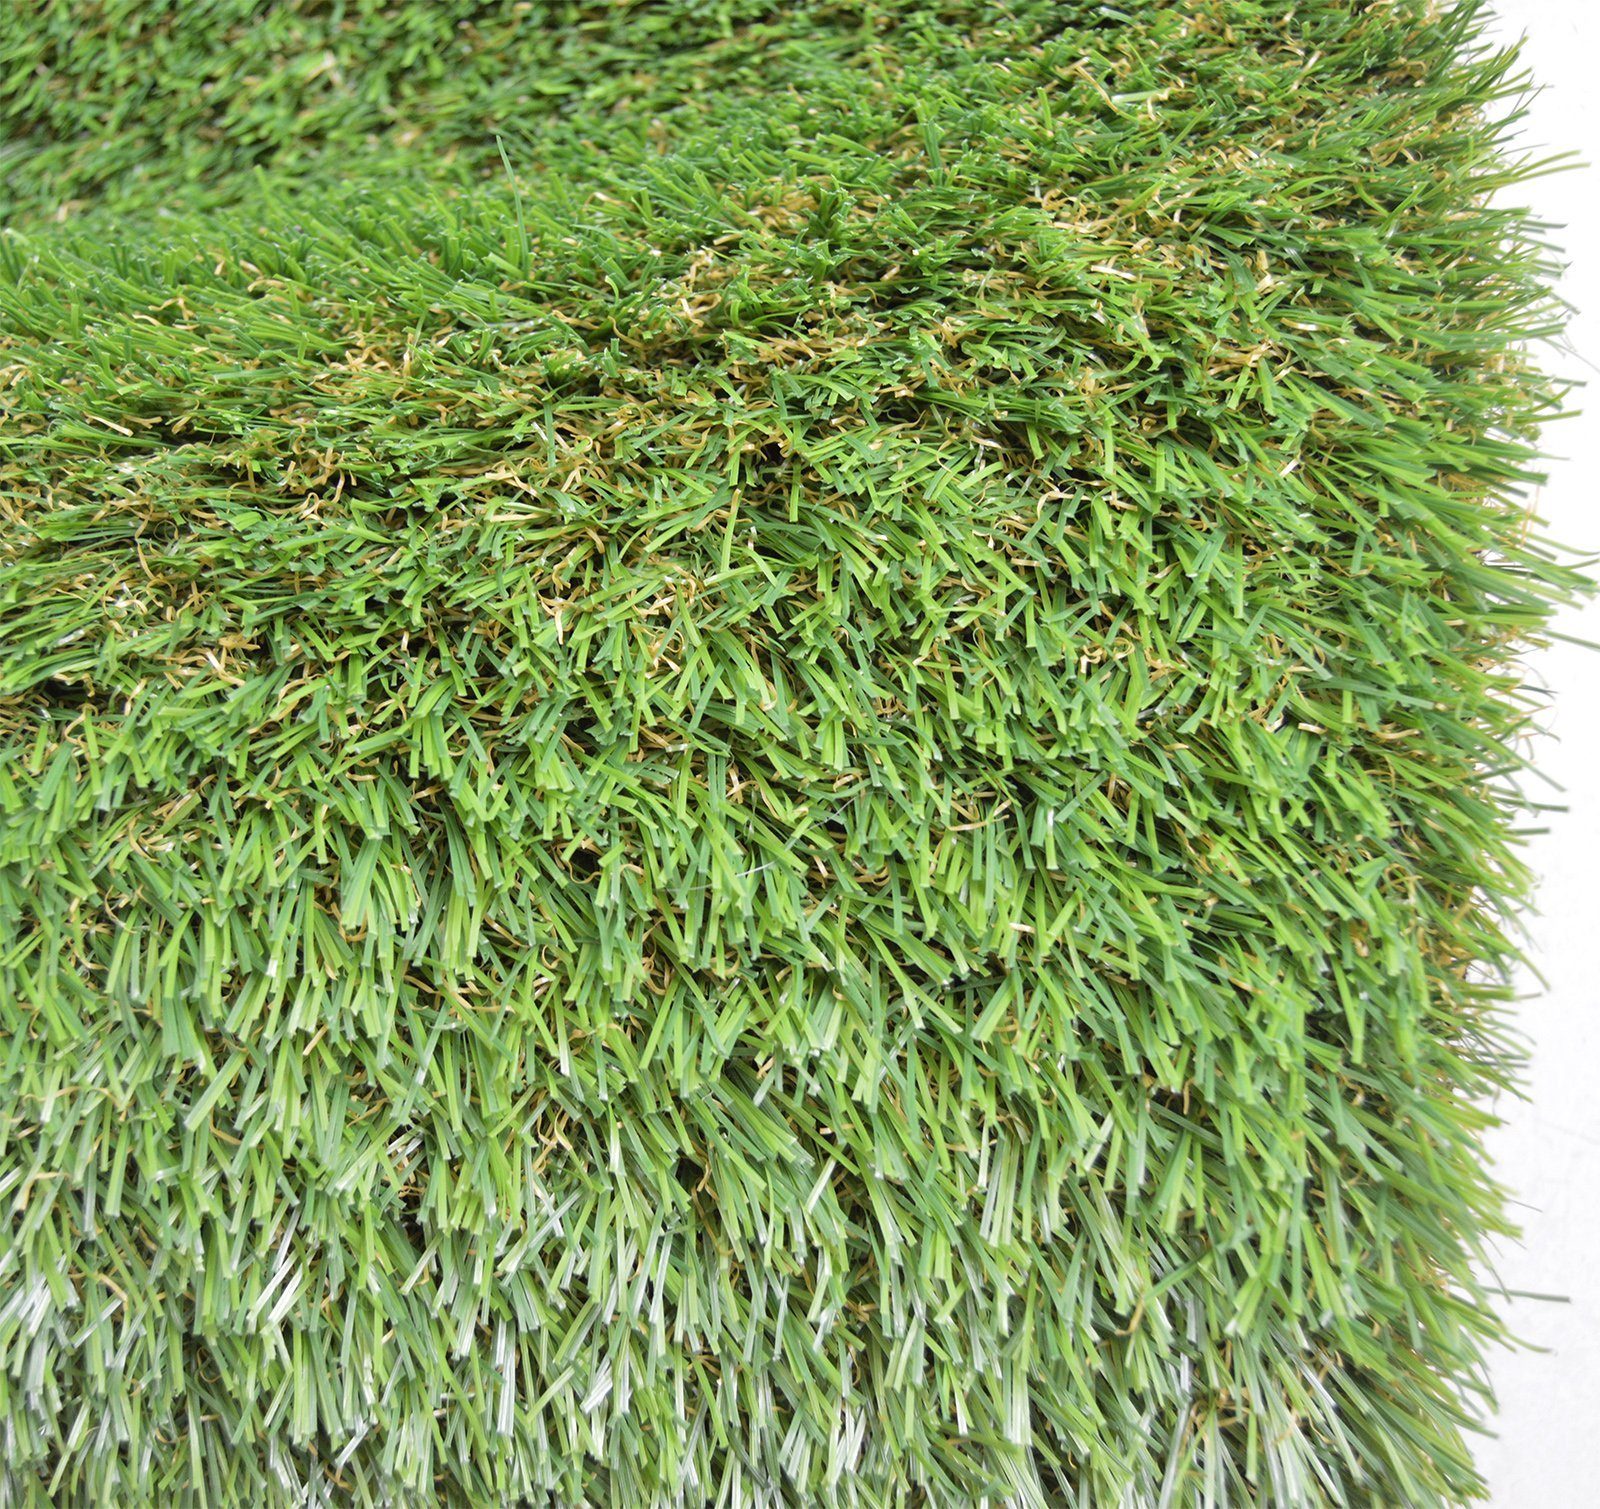 5' x 12' Synthetic Turf Artificial Lawn Fake Grass Indoor Outdoor Landscape Pet Dog Area by Artificial lawn